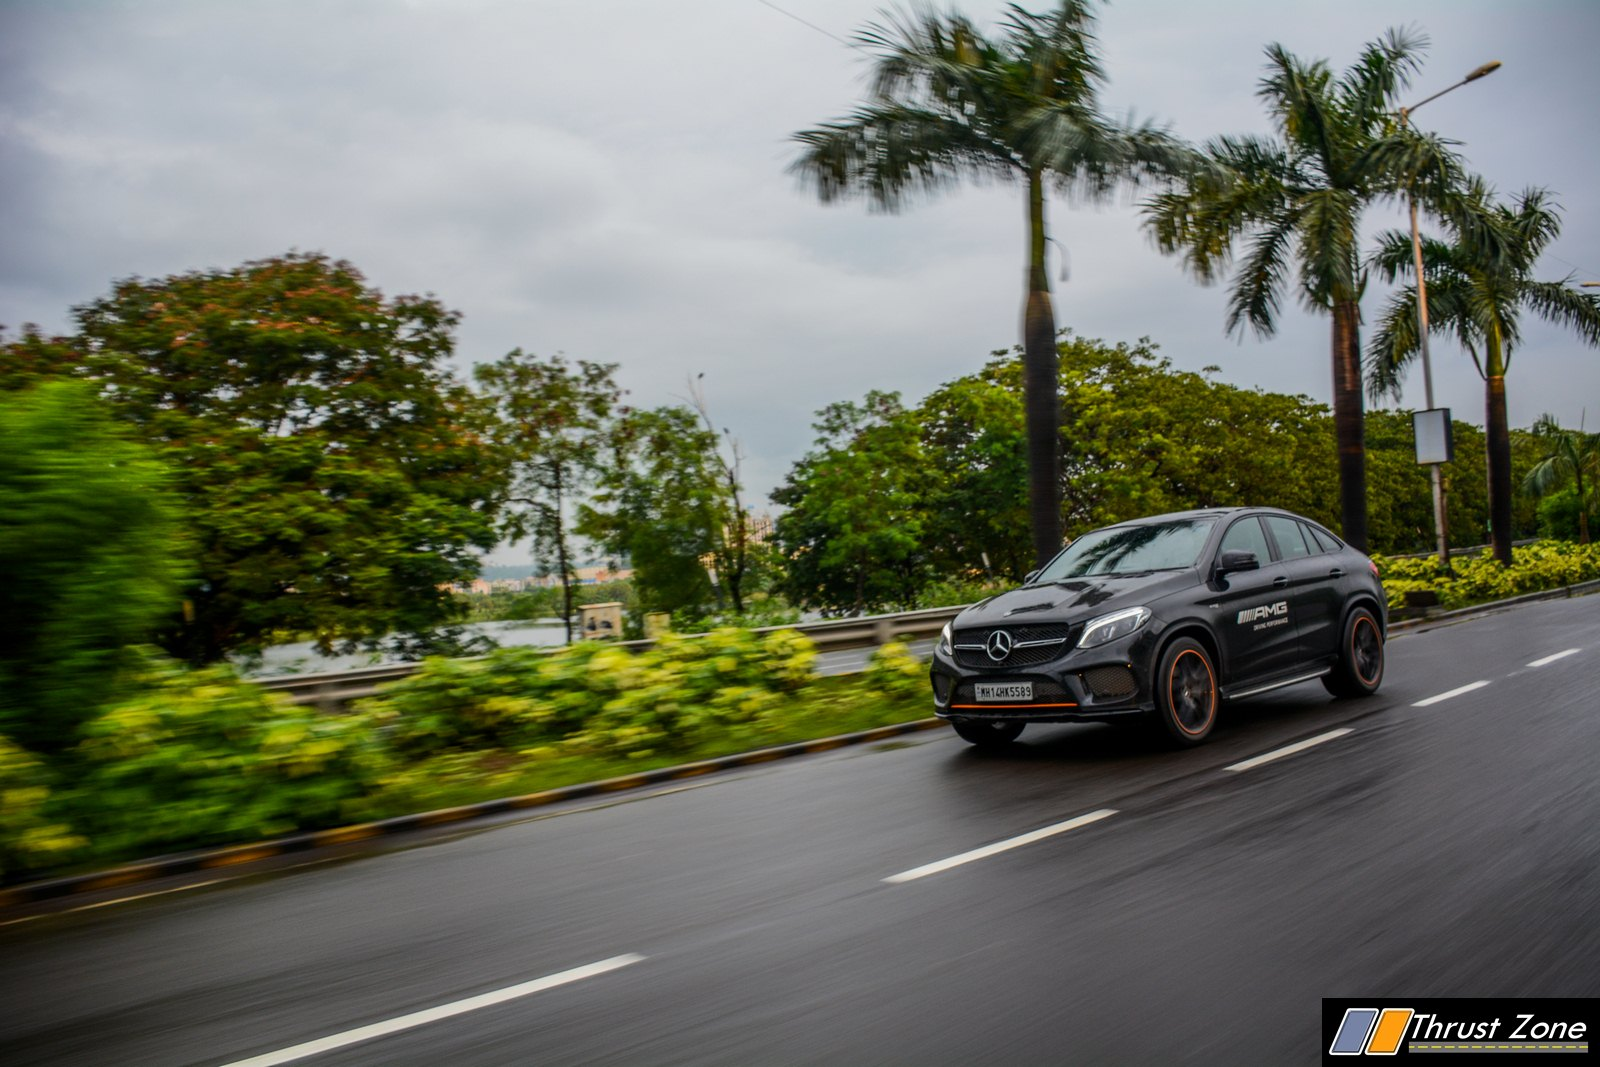 2019-Mercedes-GLE-43-AMG-India-Review-4